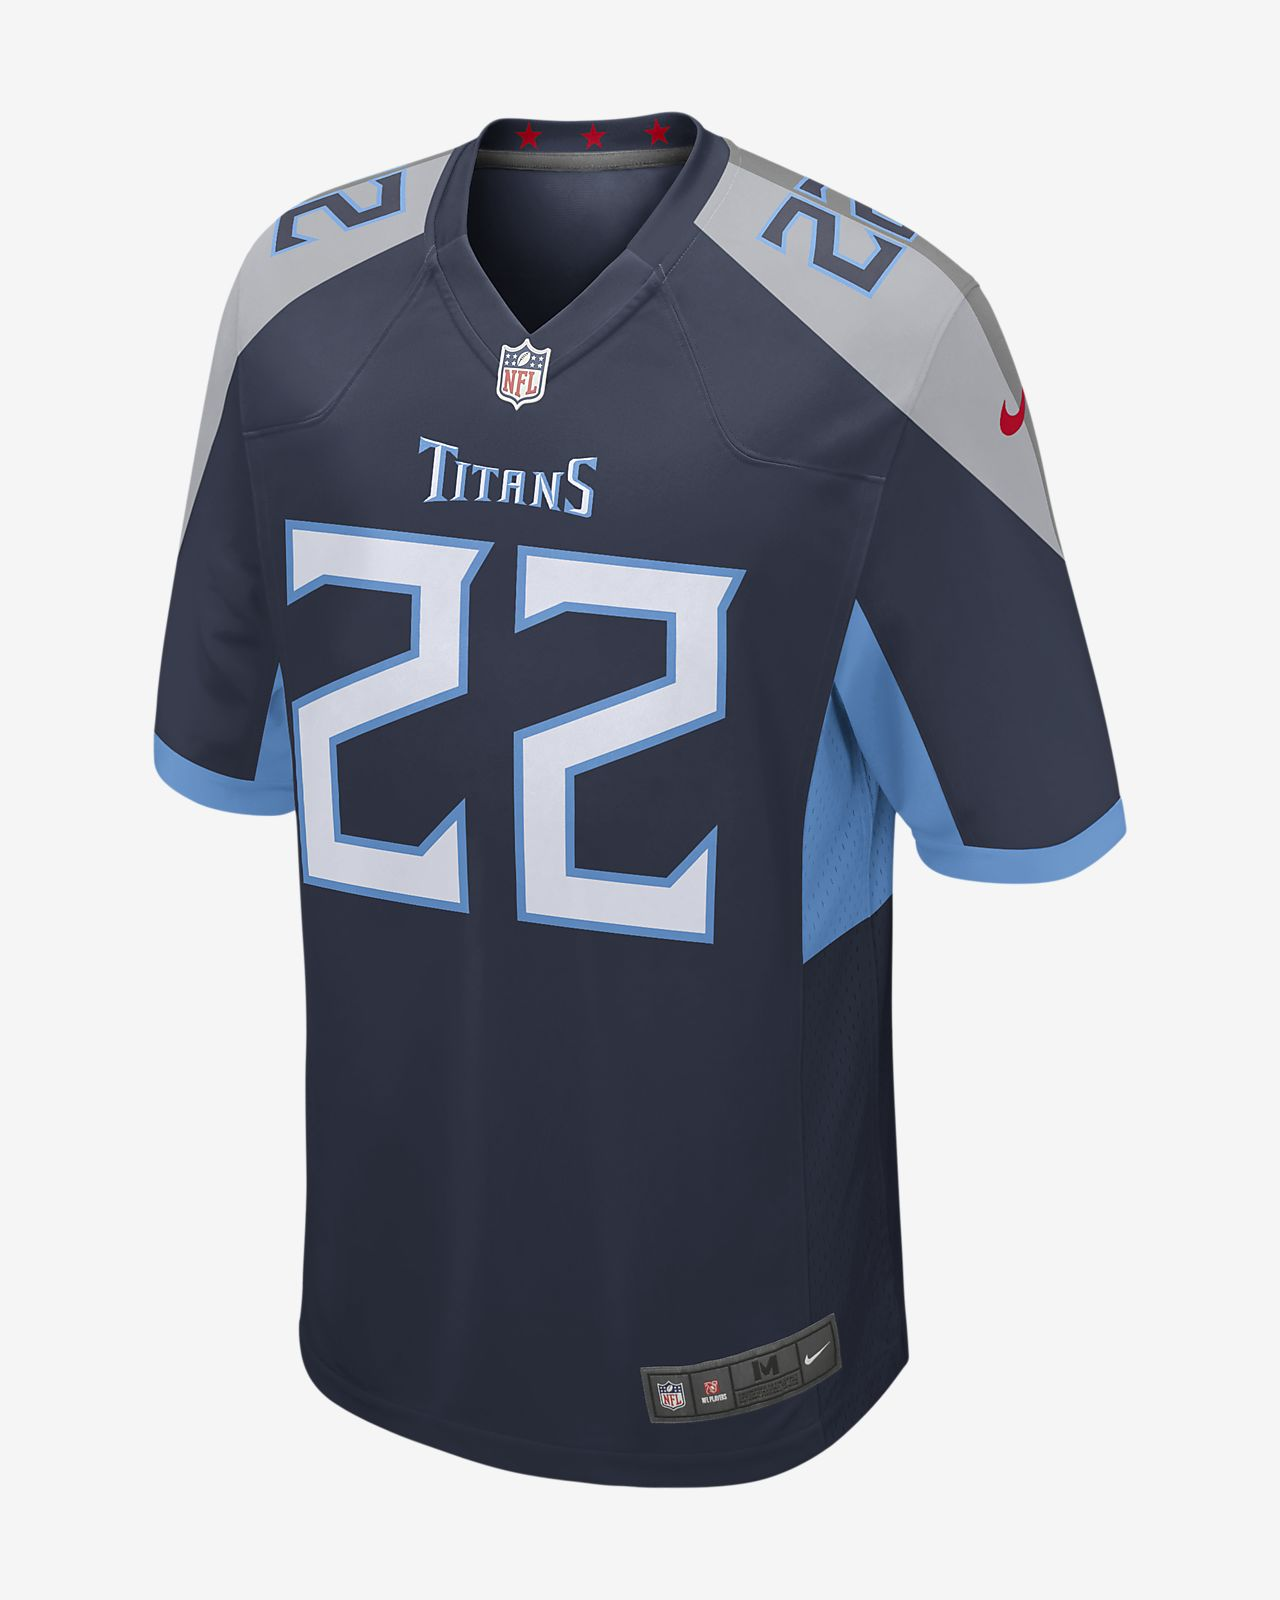 new styles b49be 58770 NFL Tennessee Titans Game Men's Football Jersey